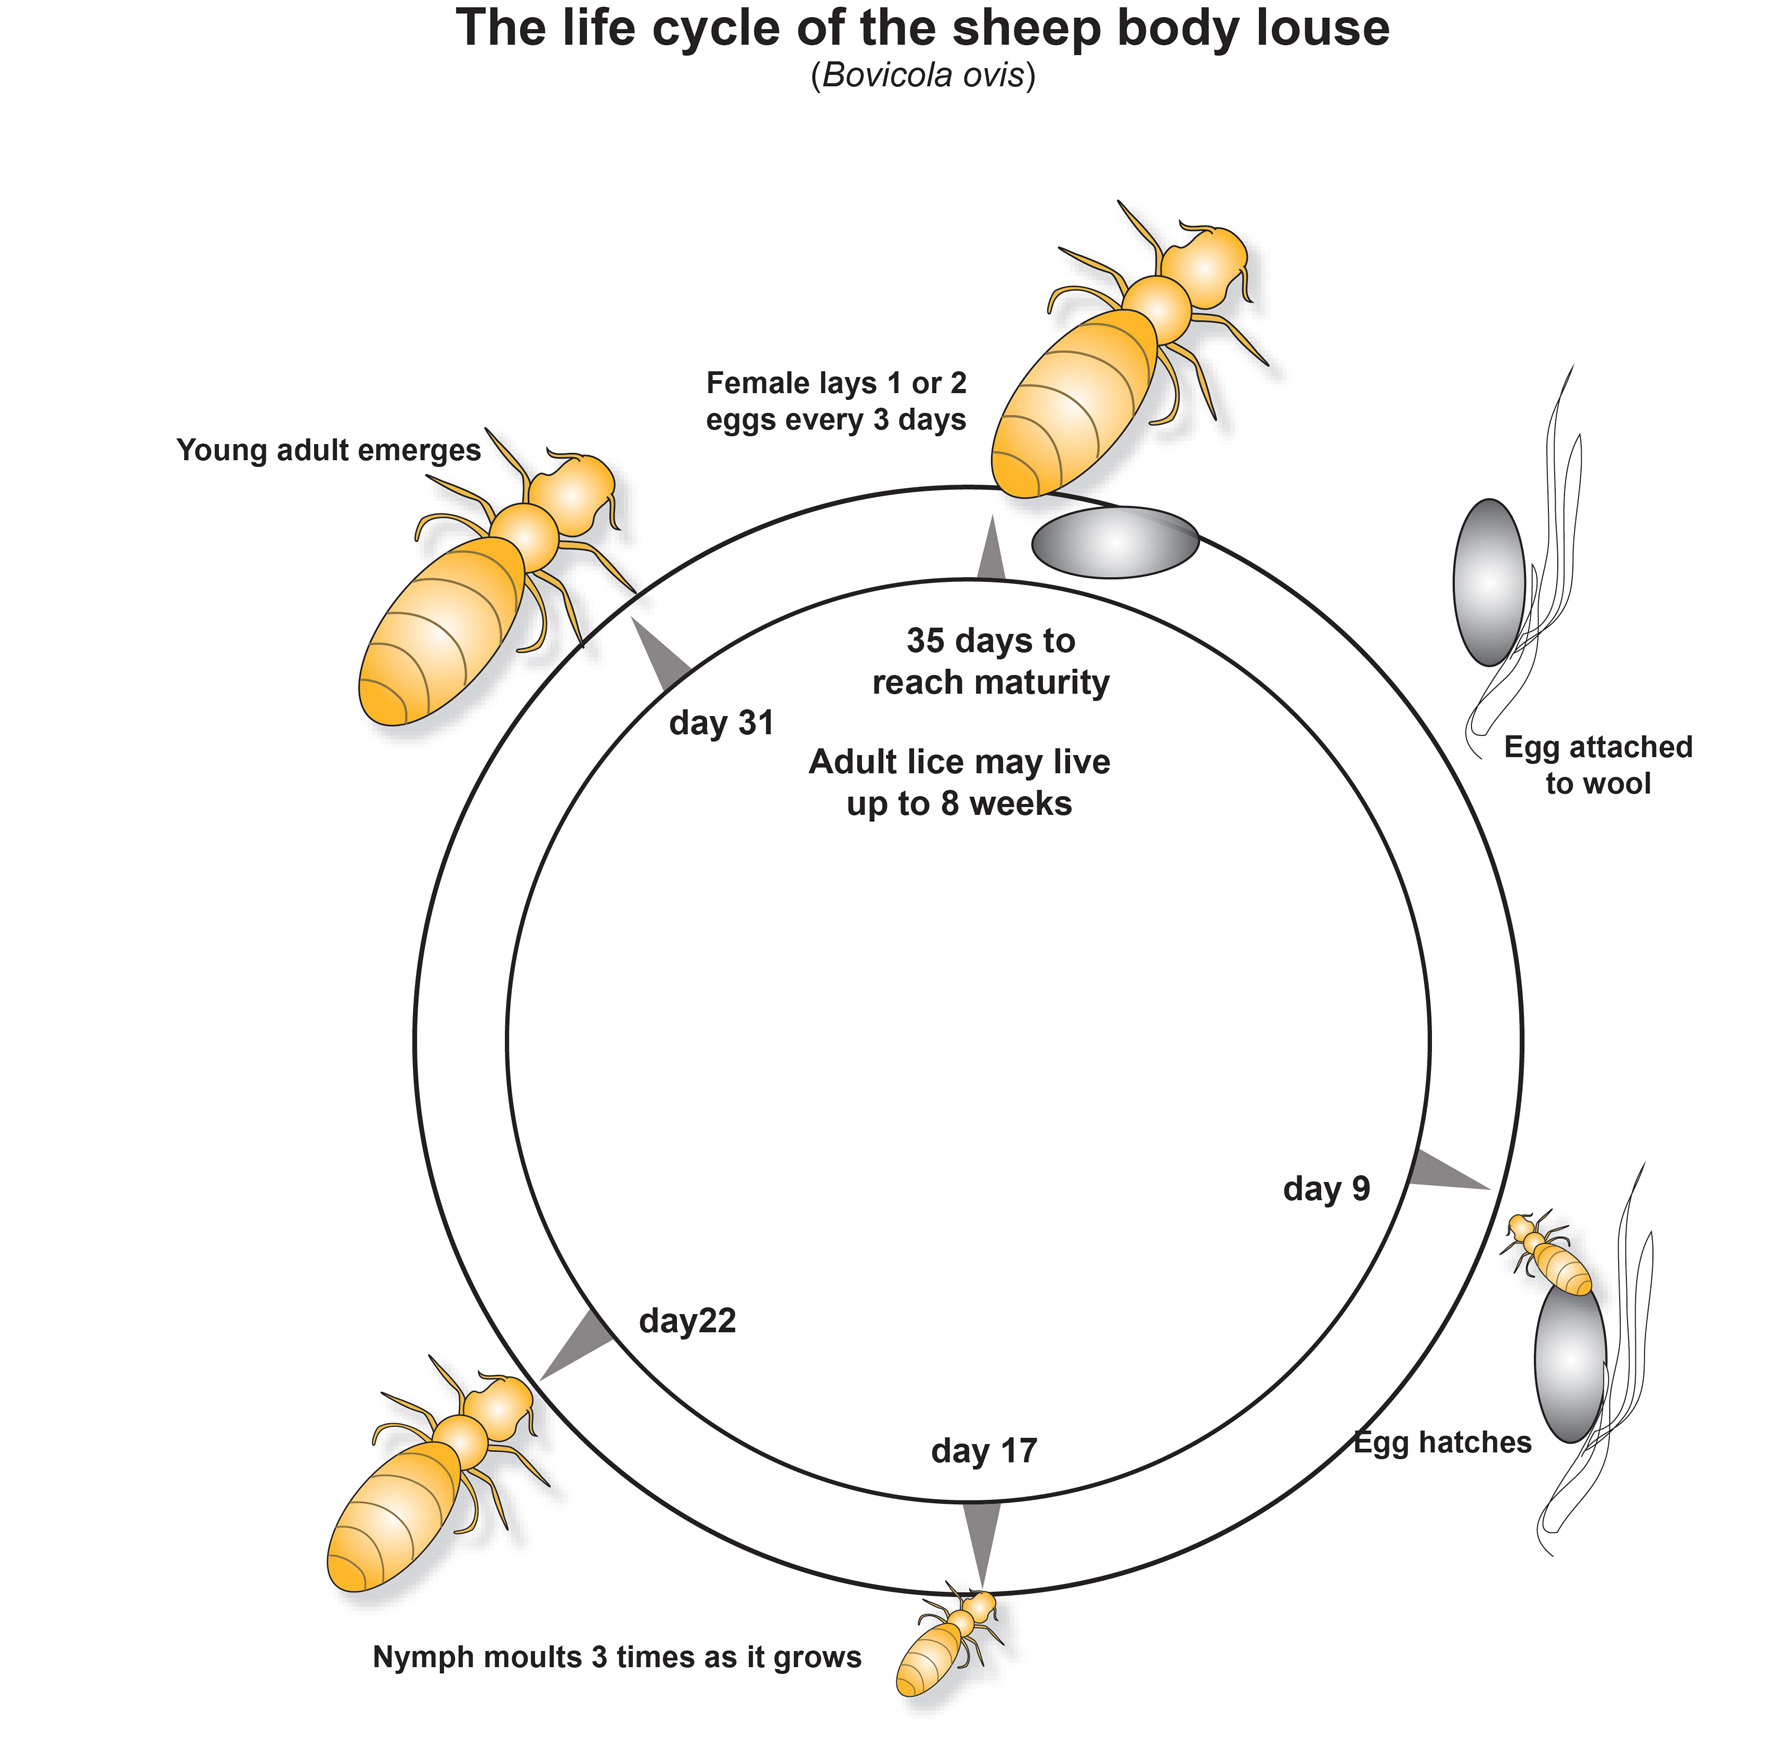 Poultry Lice Life Cycle Pictures to Pin on Pinterest